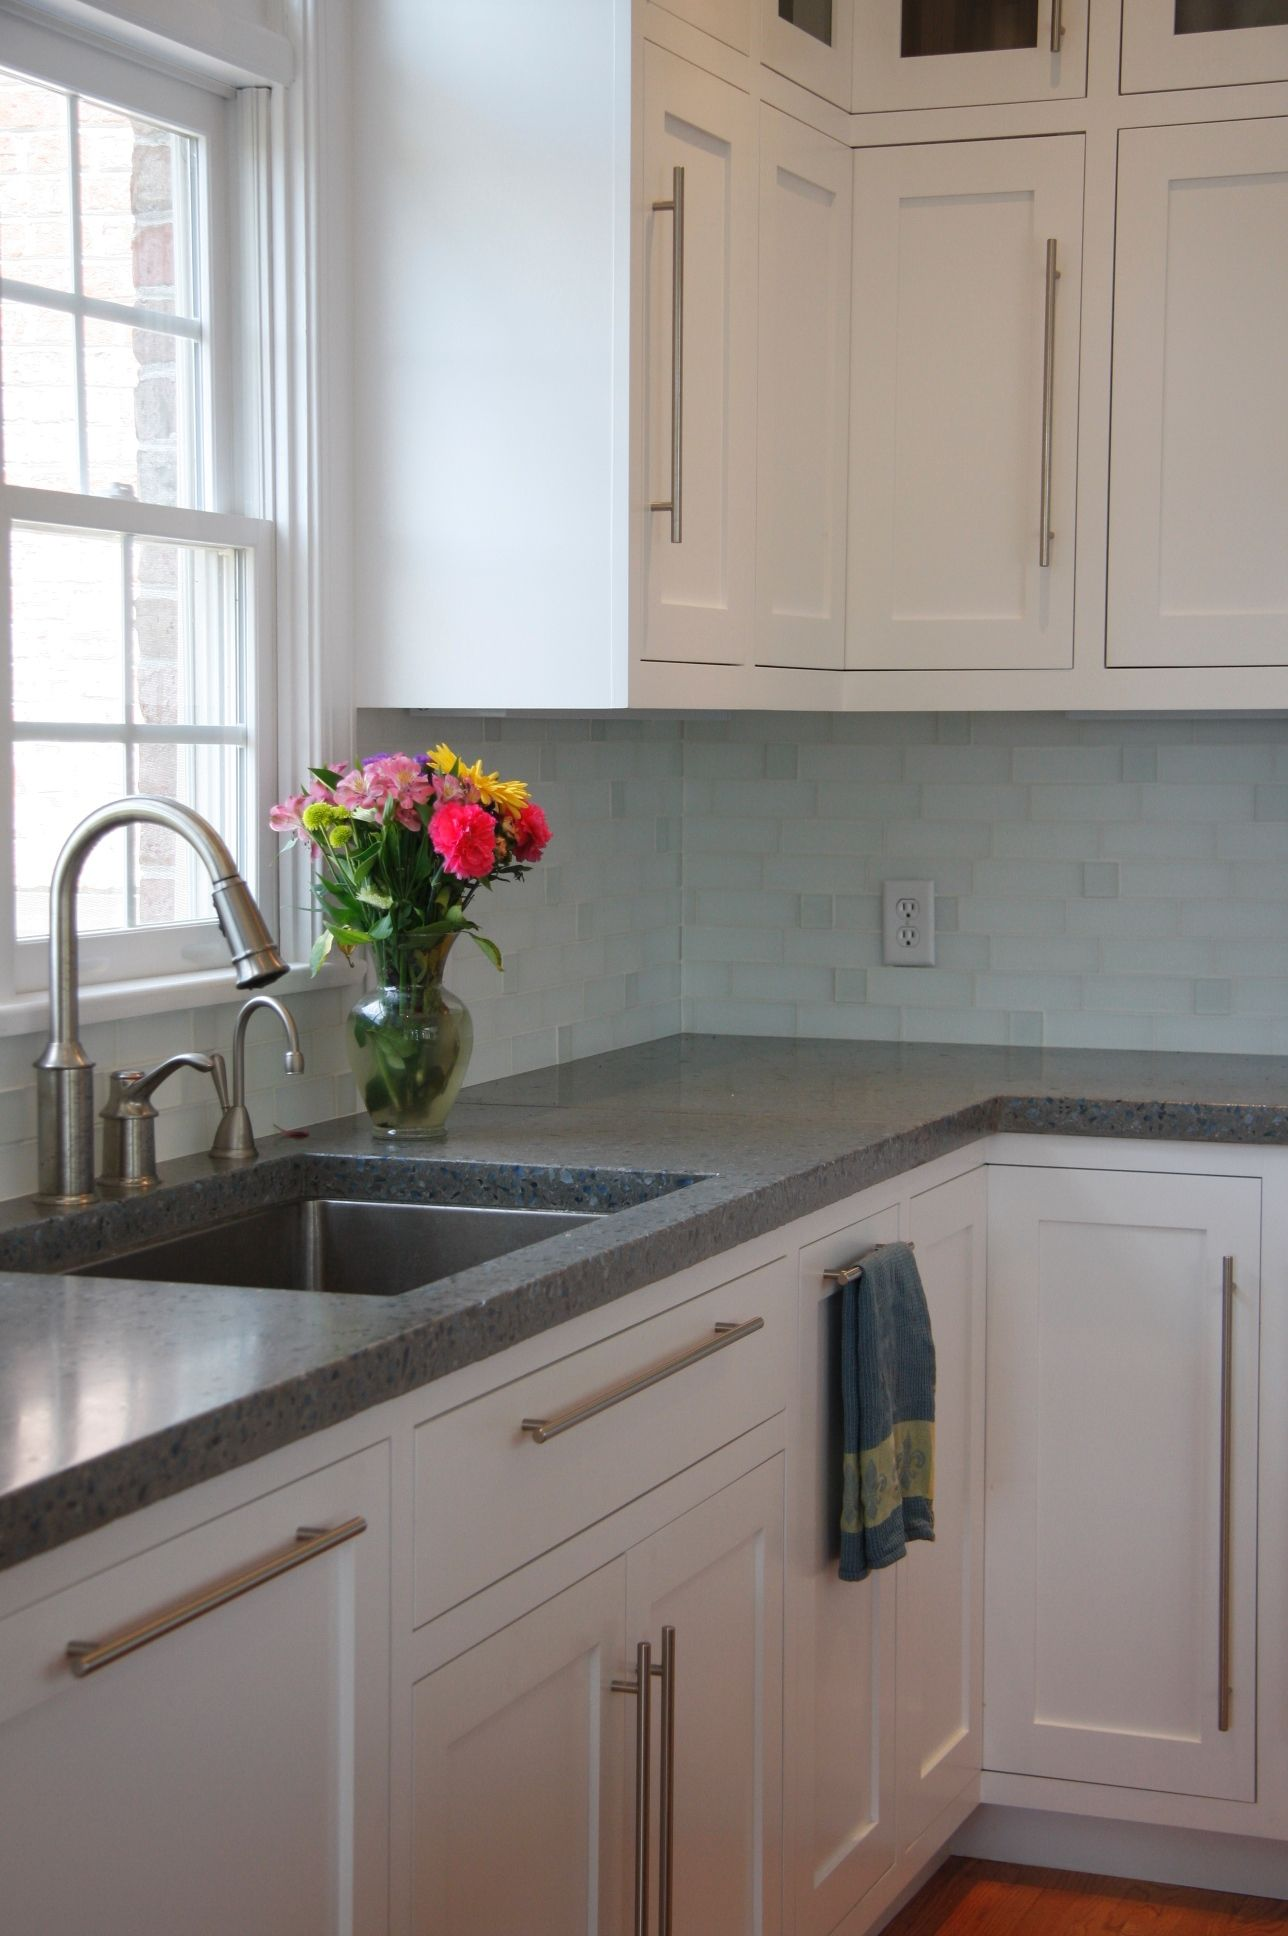 Concrete Counters White Shaker Cabinets Stainless Hardware Sink And Faucet White Shaker Kitchen Shaker Kitchen Cabinets White Shaker Kitchen Cabinets